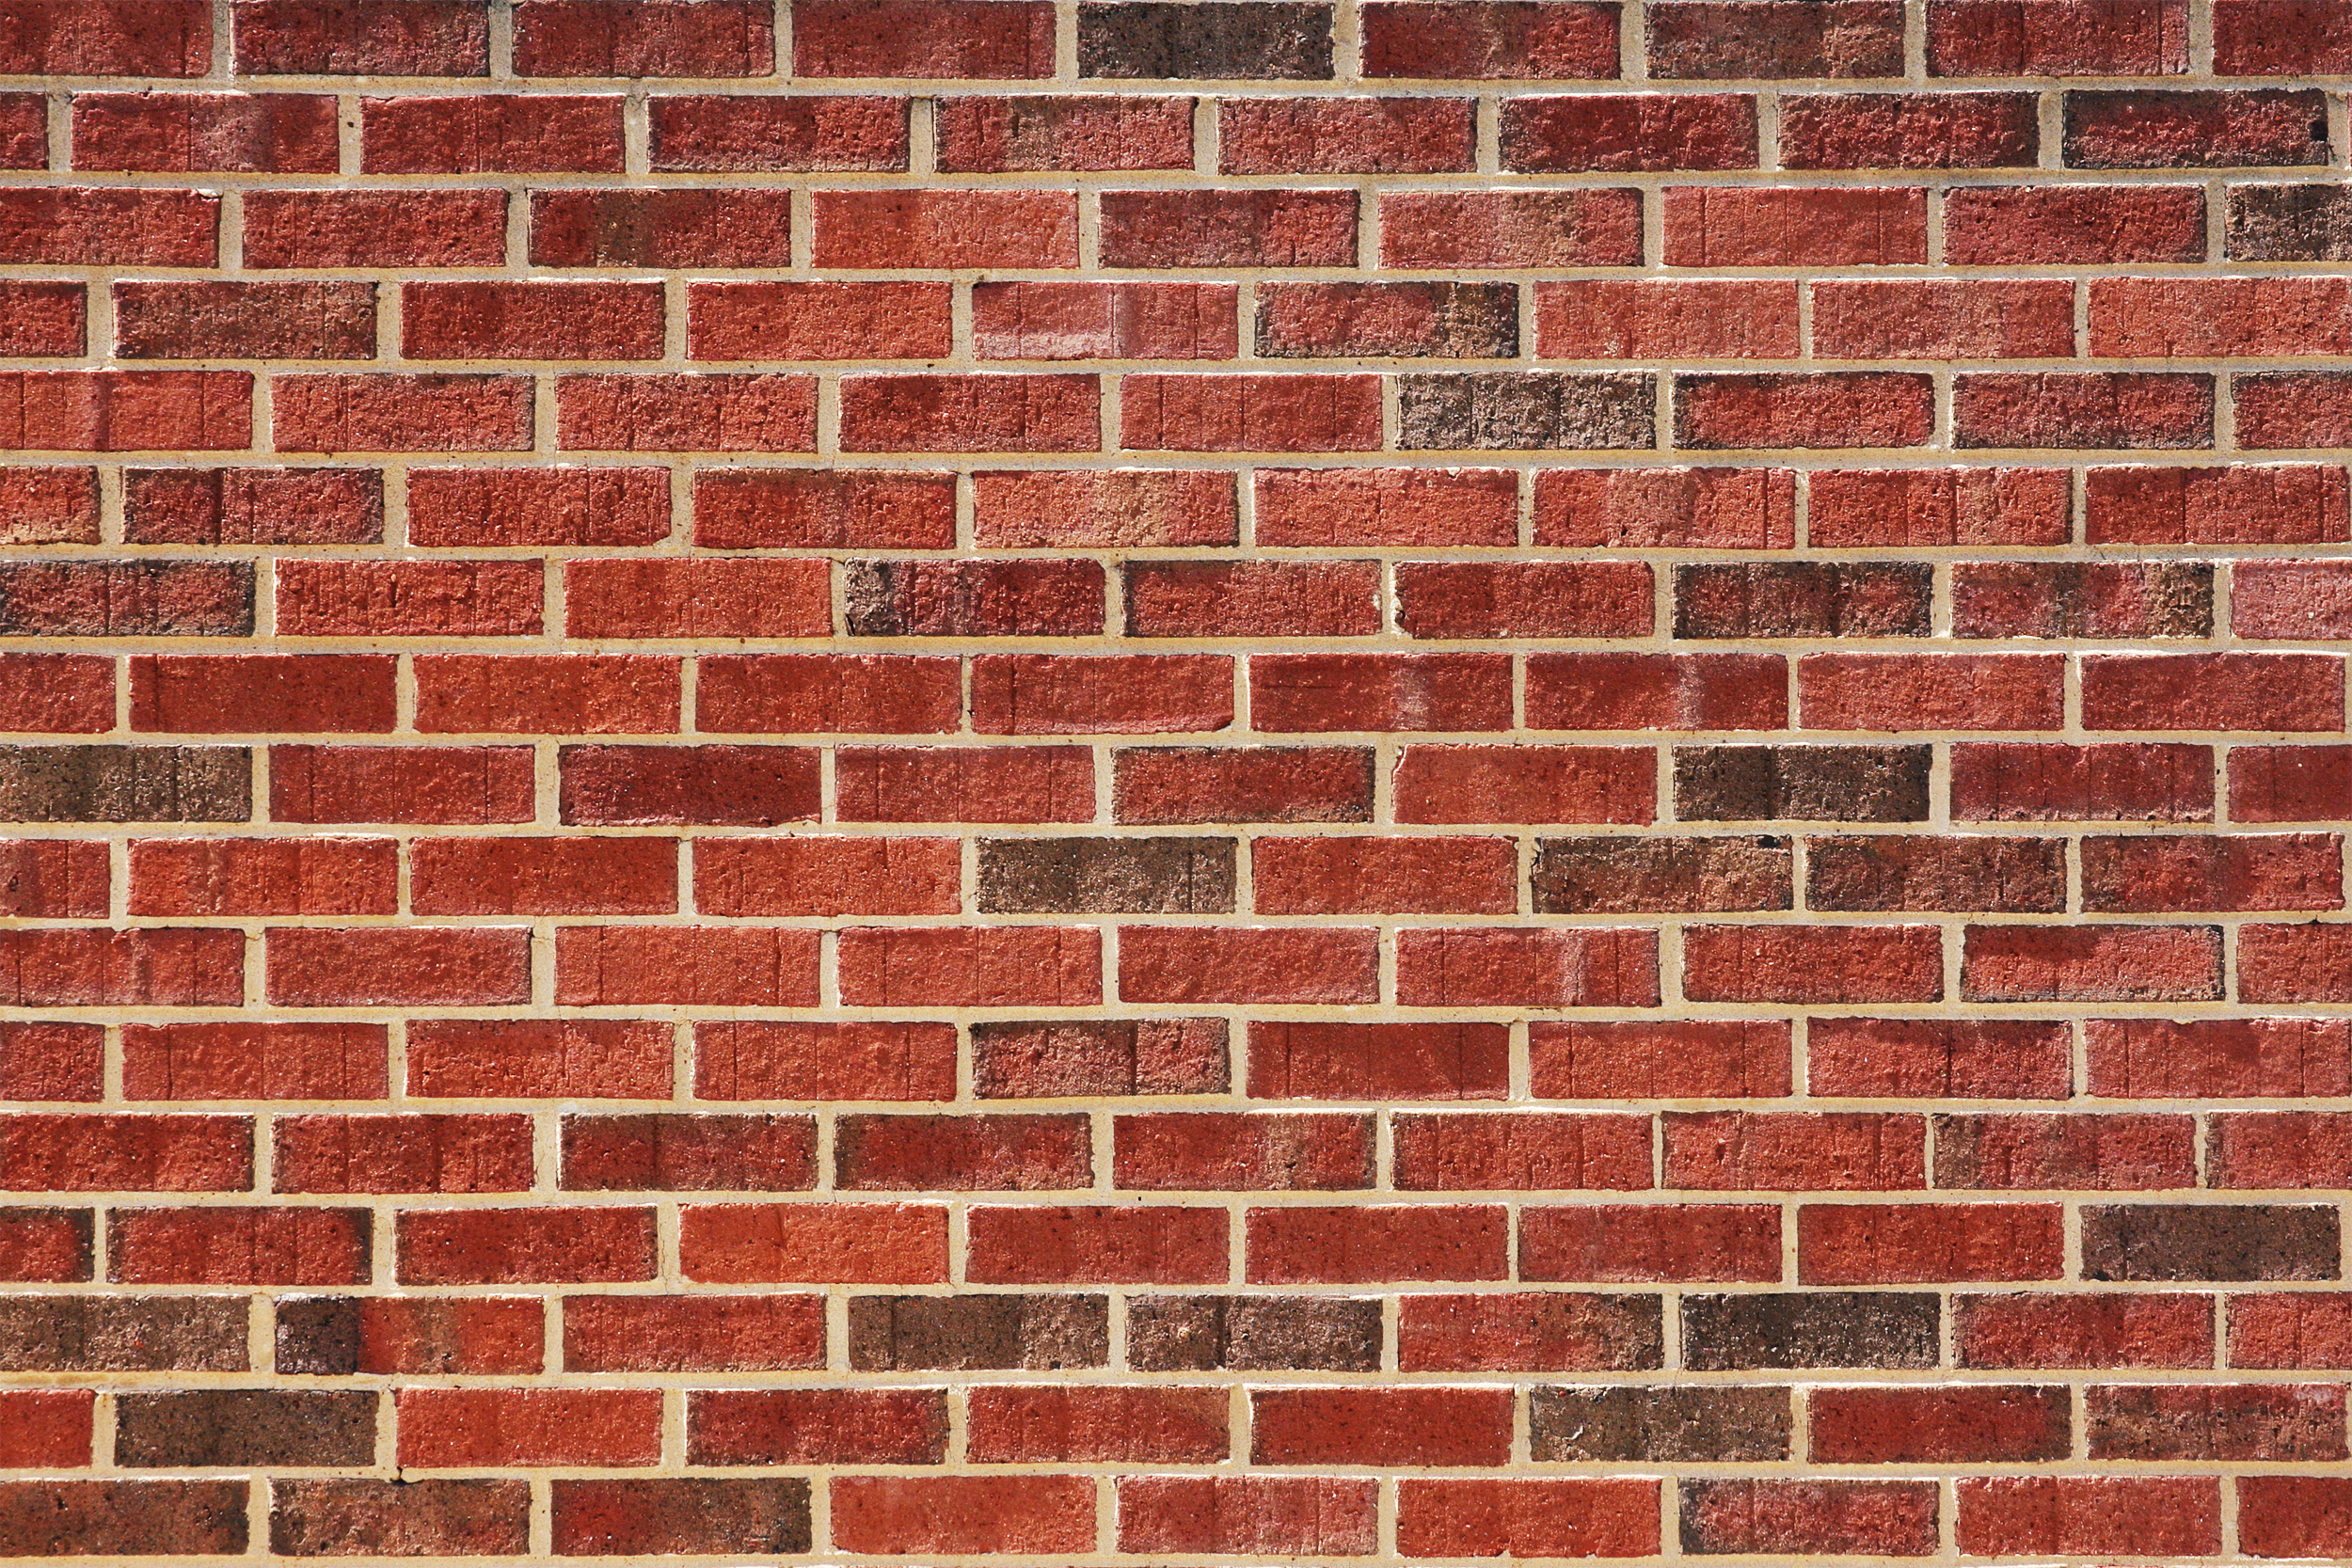 Brick Background Powerpoint Backgrounds For Free Powerpoint Templates